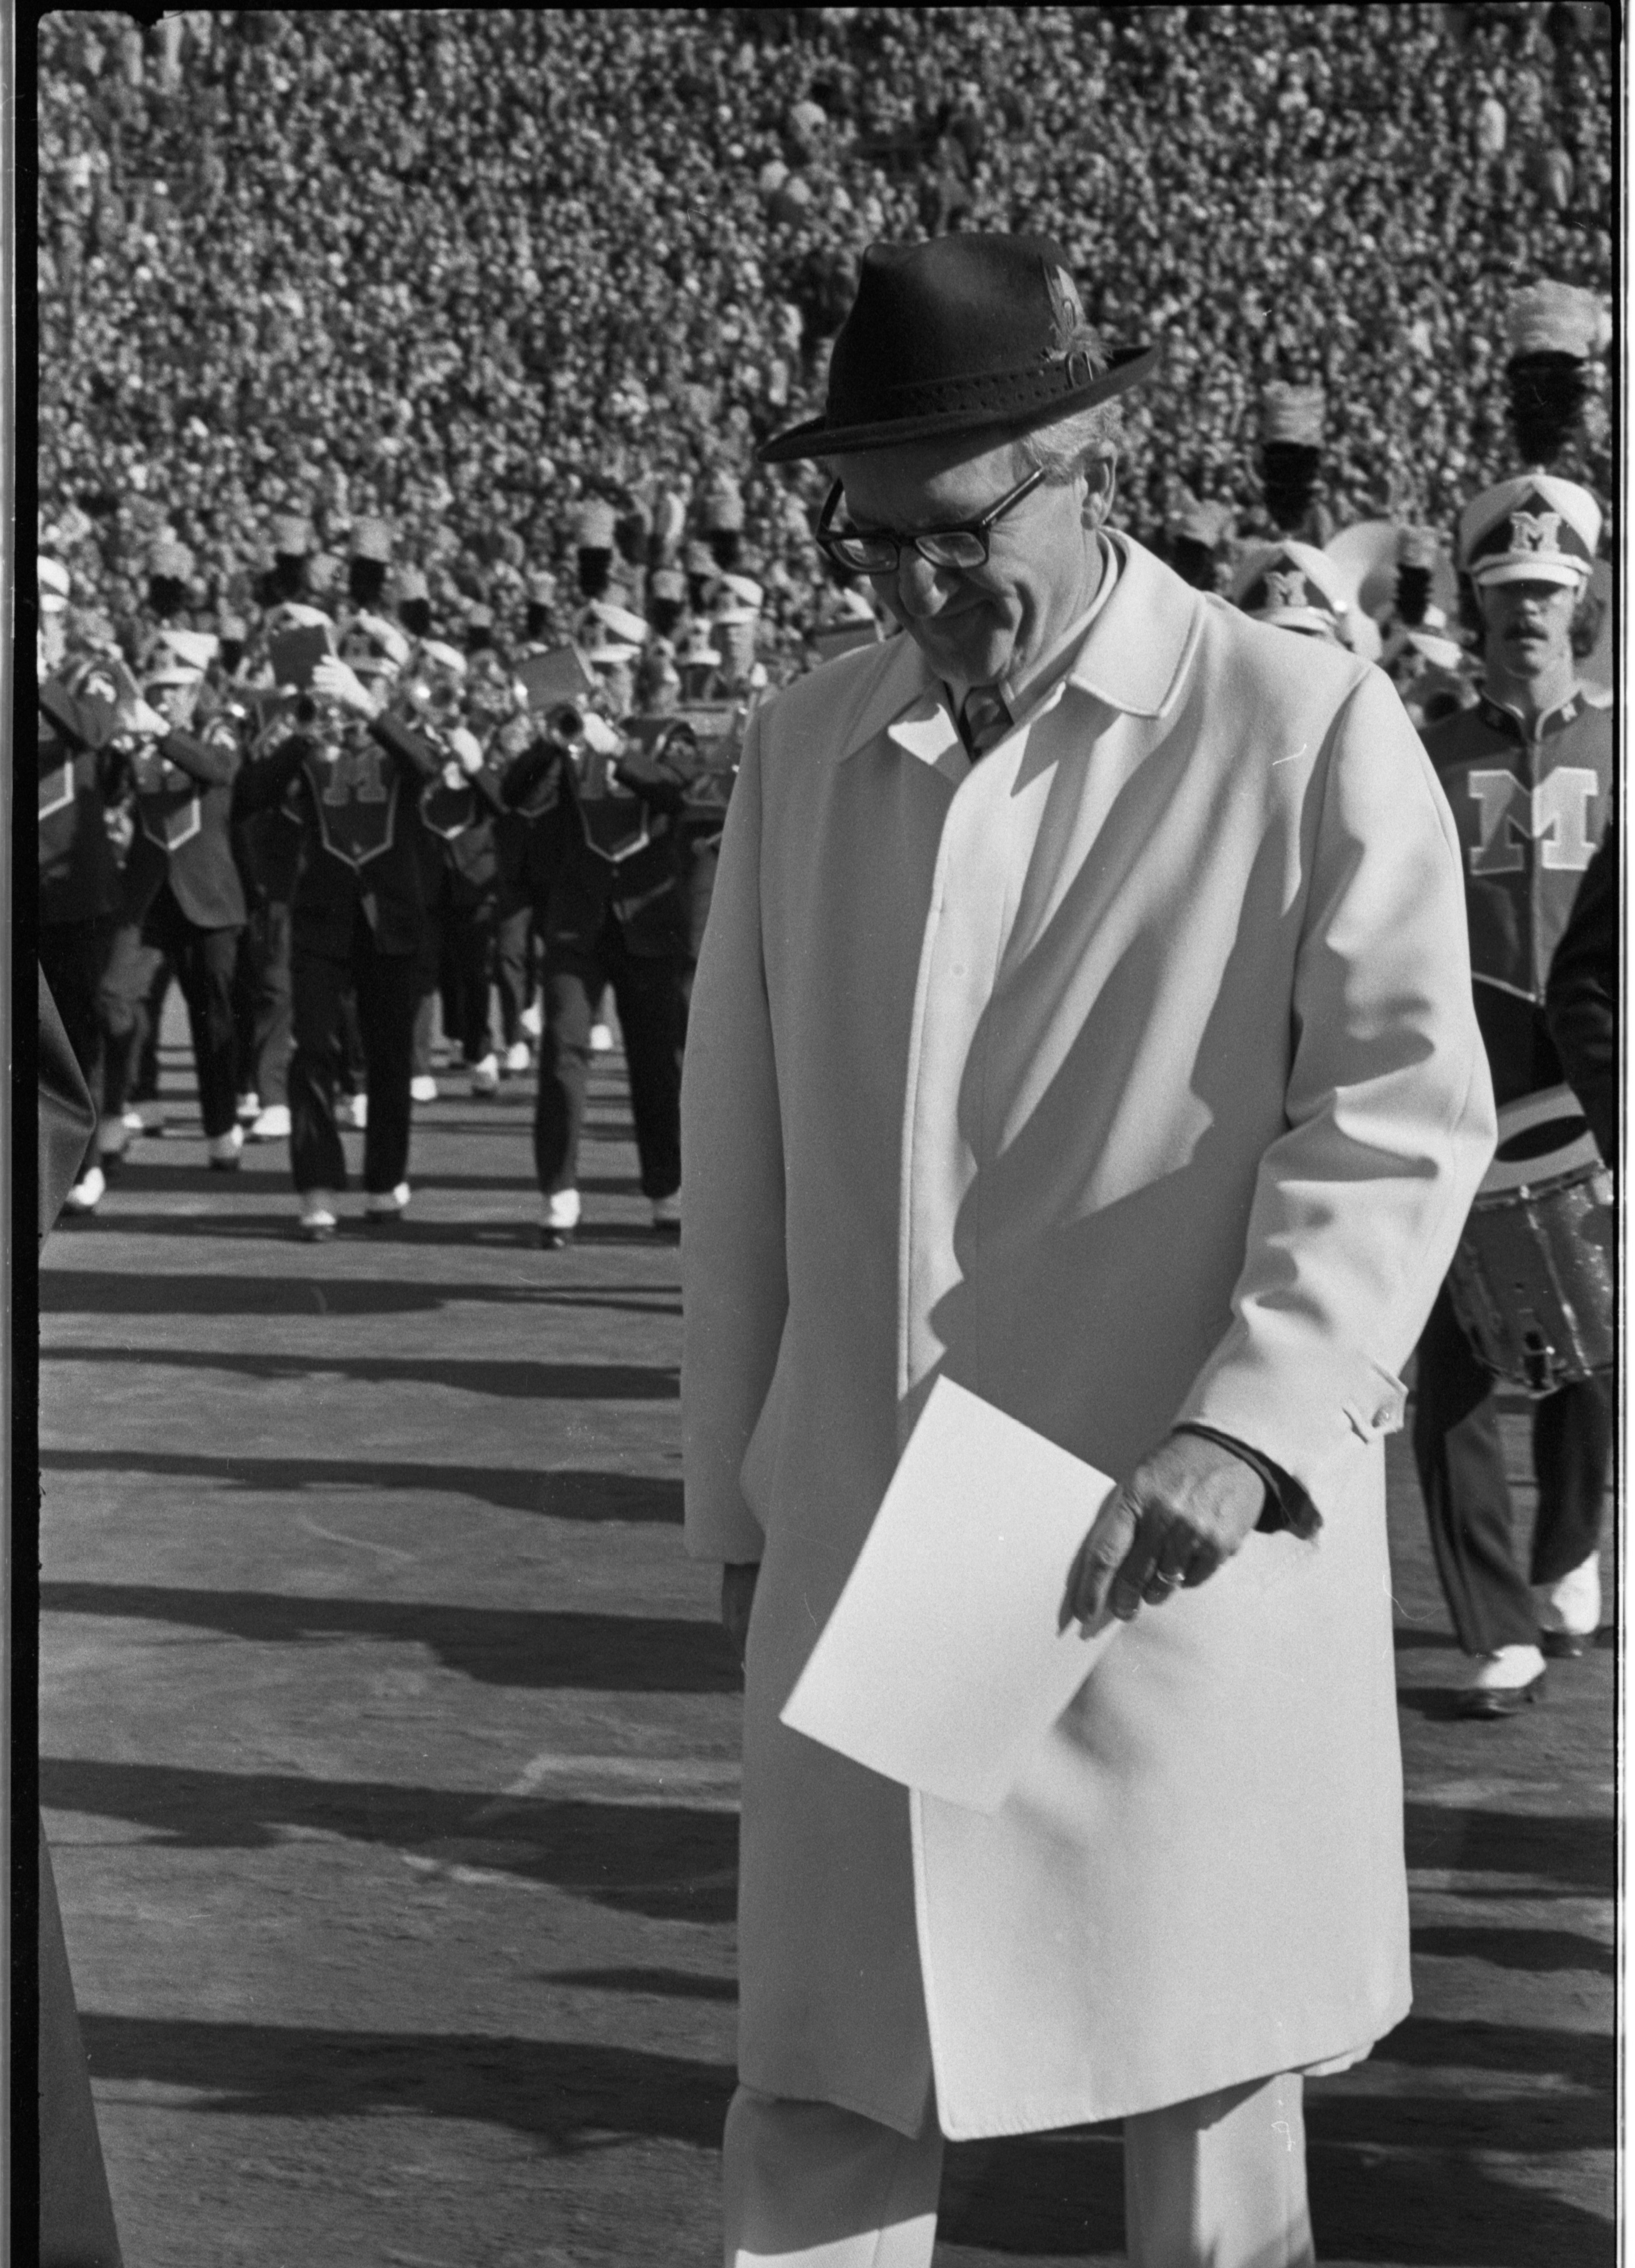 Bob Ufer Accepts Media Hall of Fame Honors at Halftime of Michigan - Ohio State Game, November 1975 image